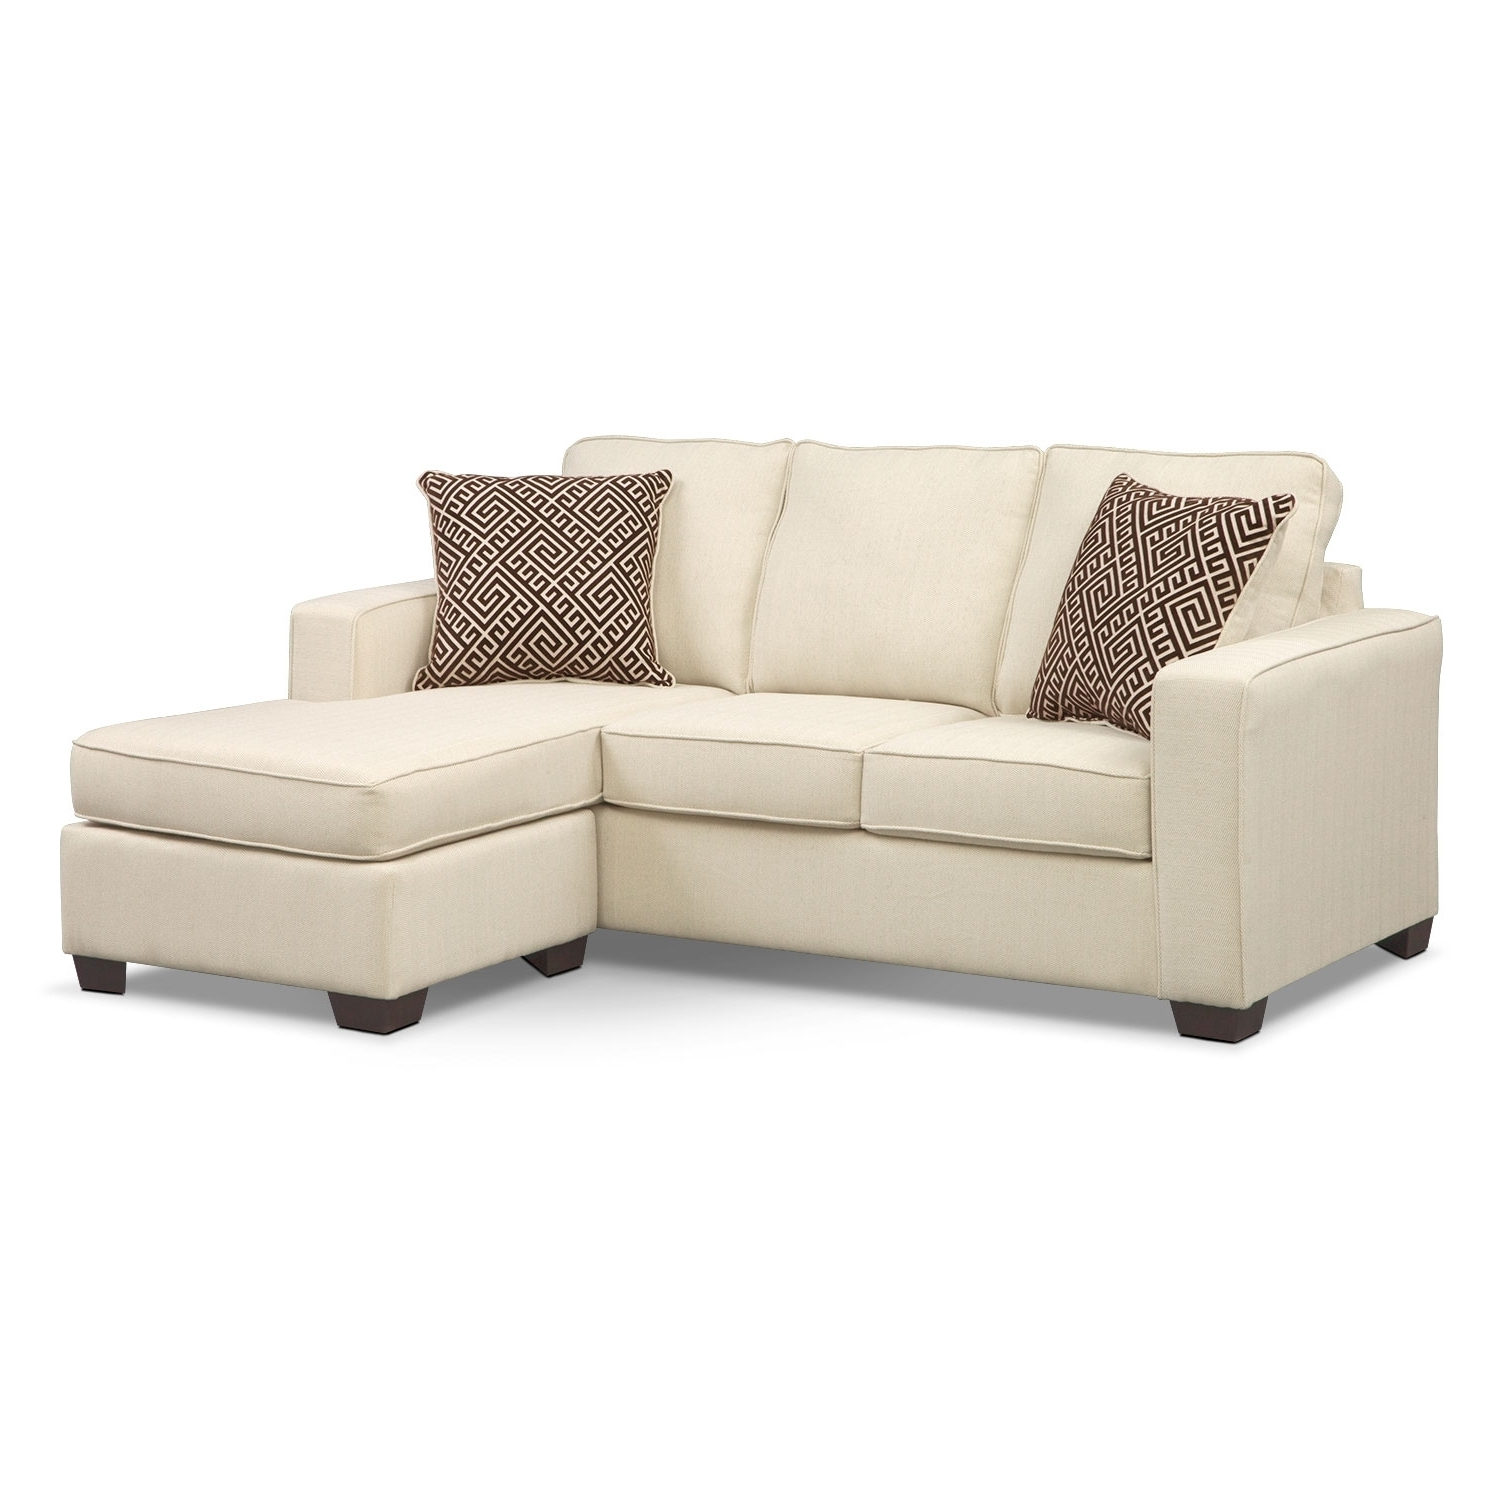 Captivating Chaise Sleeper Sofa Fantastic Modern Furniture Ideas Throughout Famous Value City Furniture Chaises (View 2 of 15)